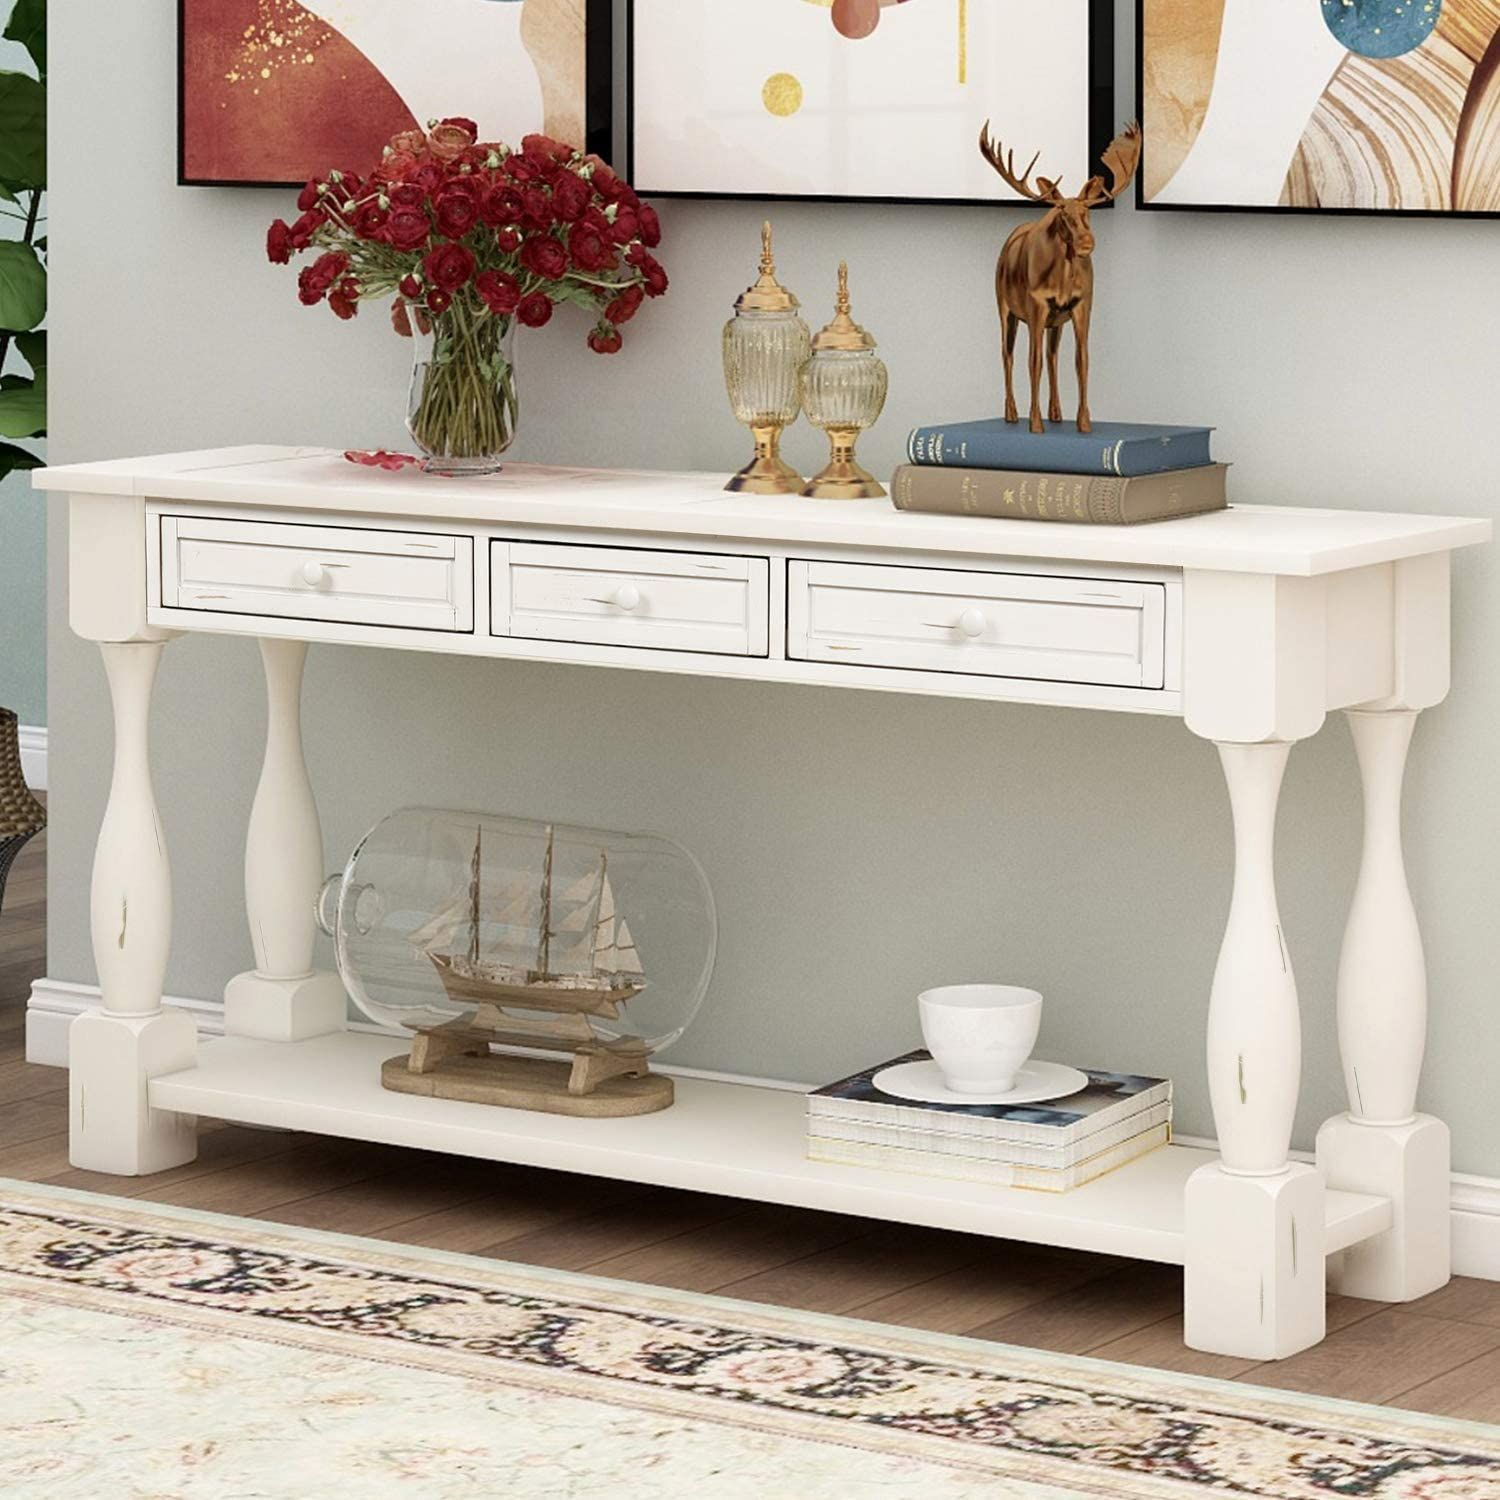 Distressed White Console Table W Storage Drawers In 2021 White Console Table Sofa Table With Storage Wood Sofa Table